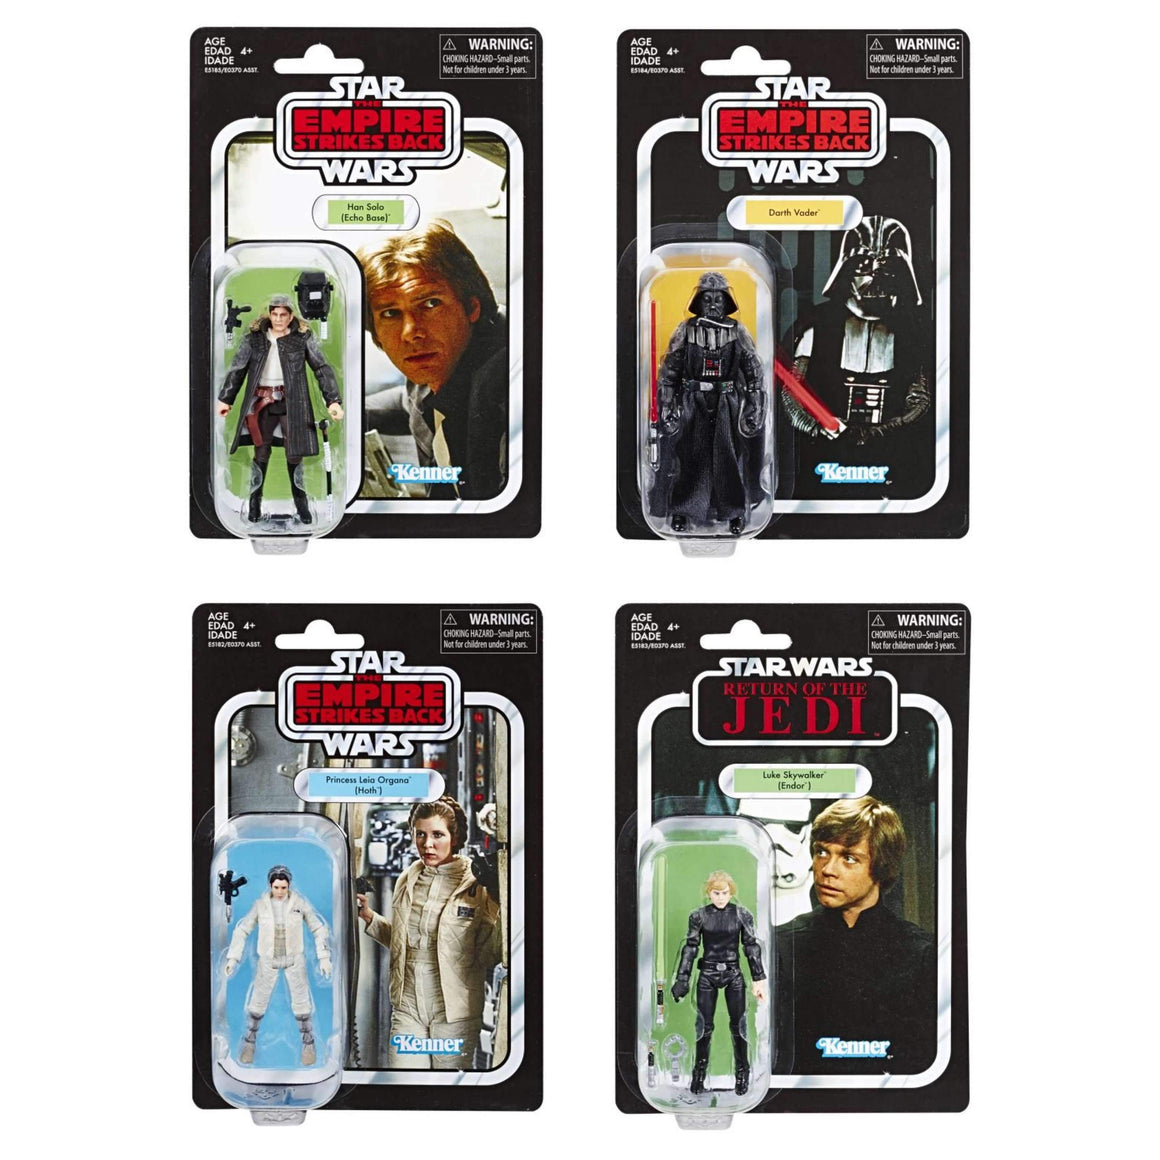 Star Wars The Vintage Collection Action Figures Wave 5 - Set of 4